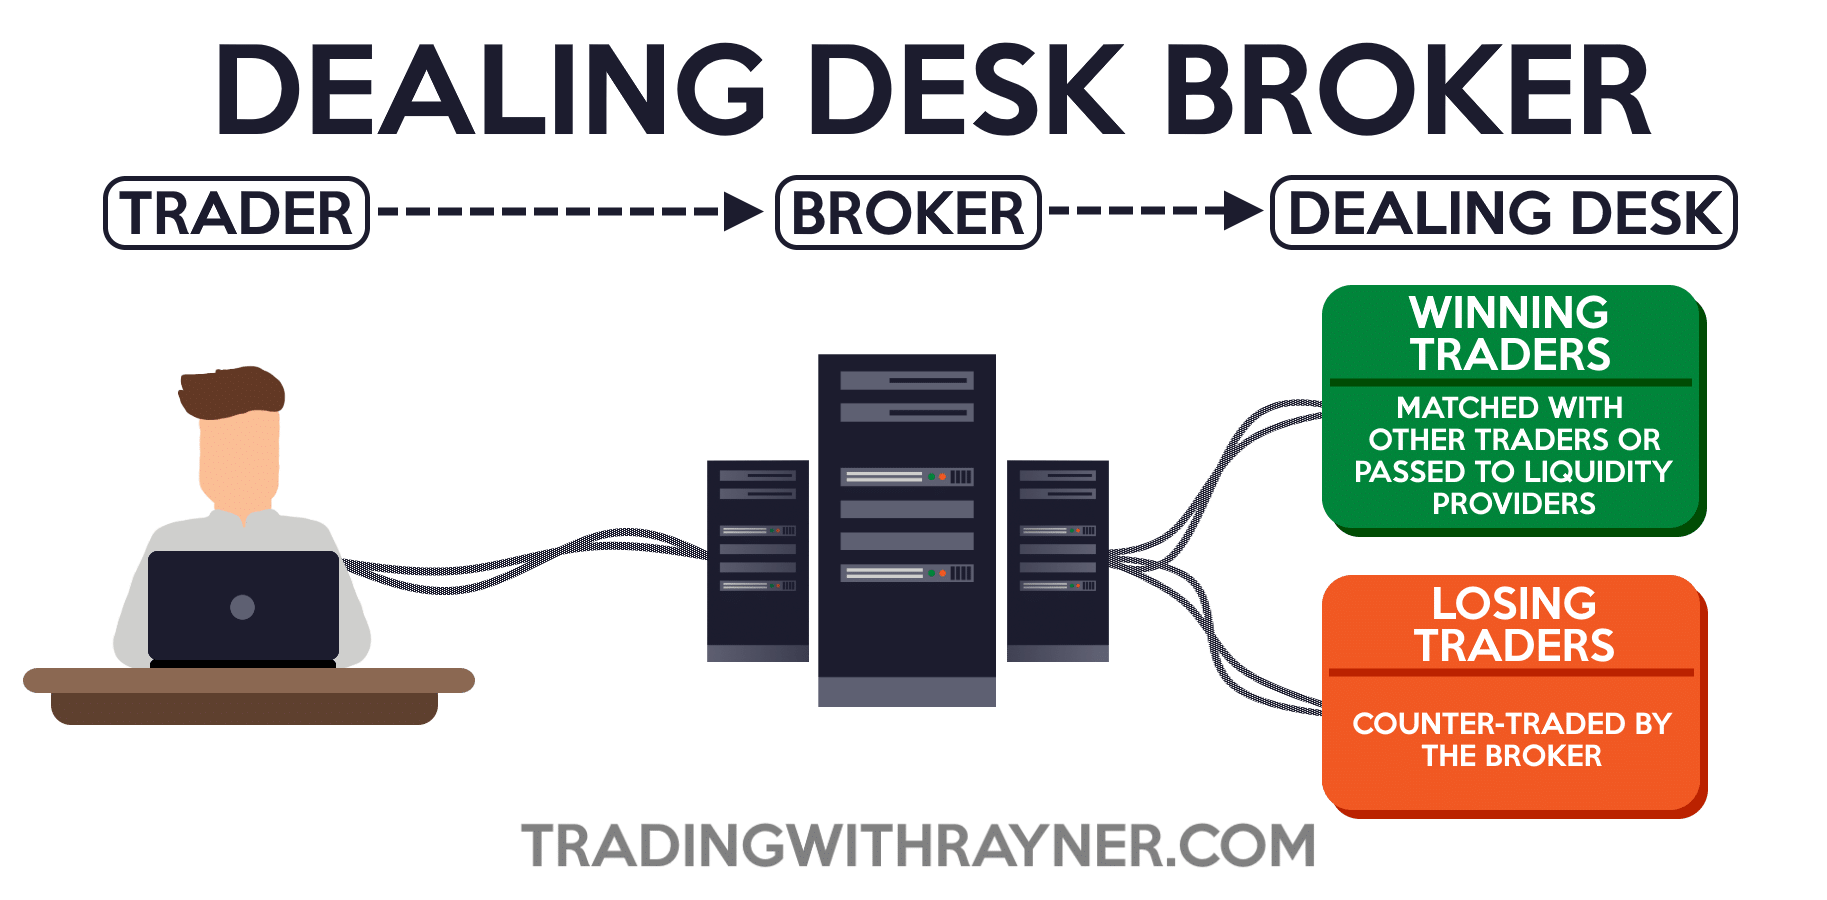 9 Best Forex Brokers for - blogger.com